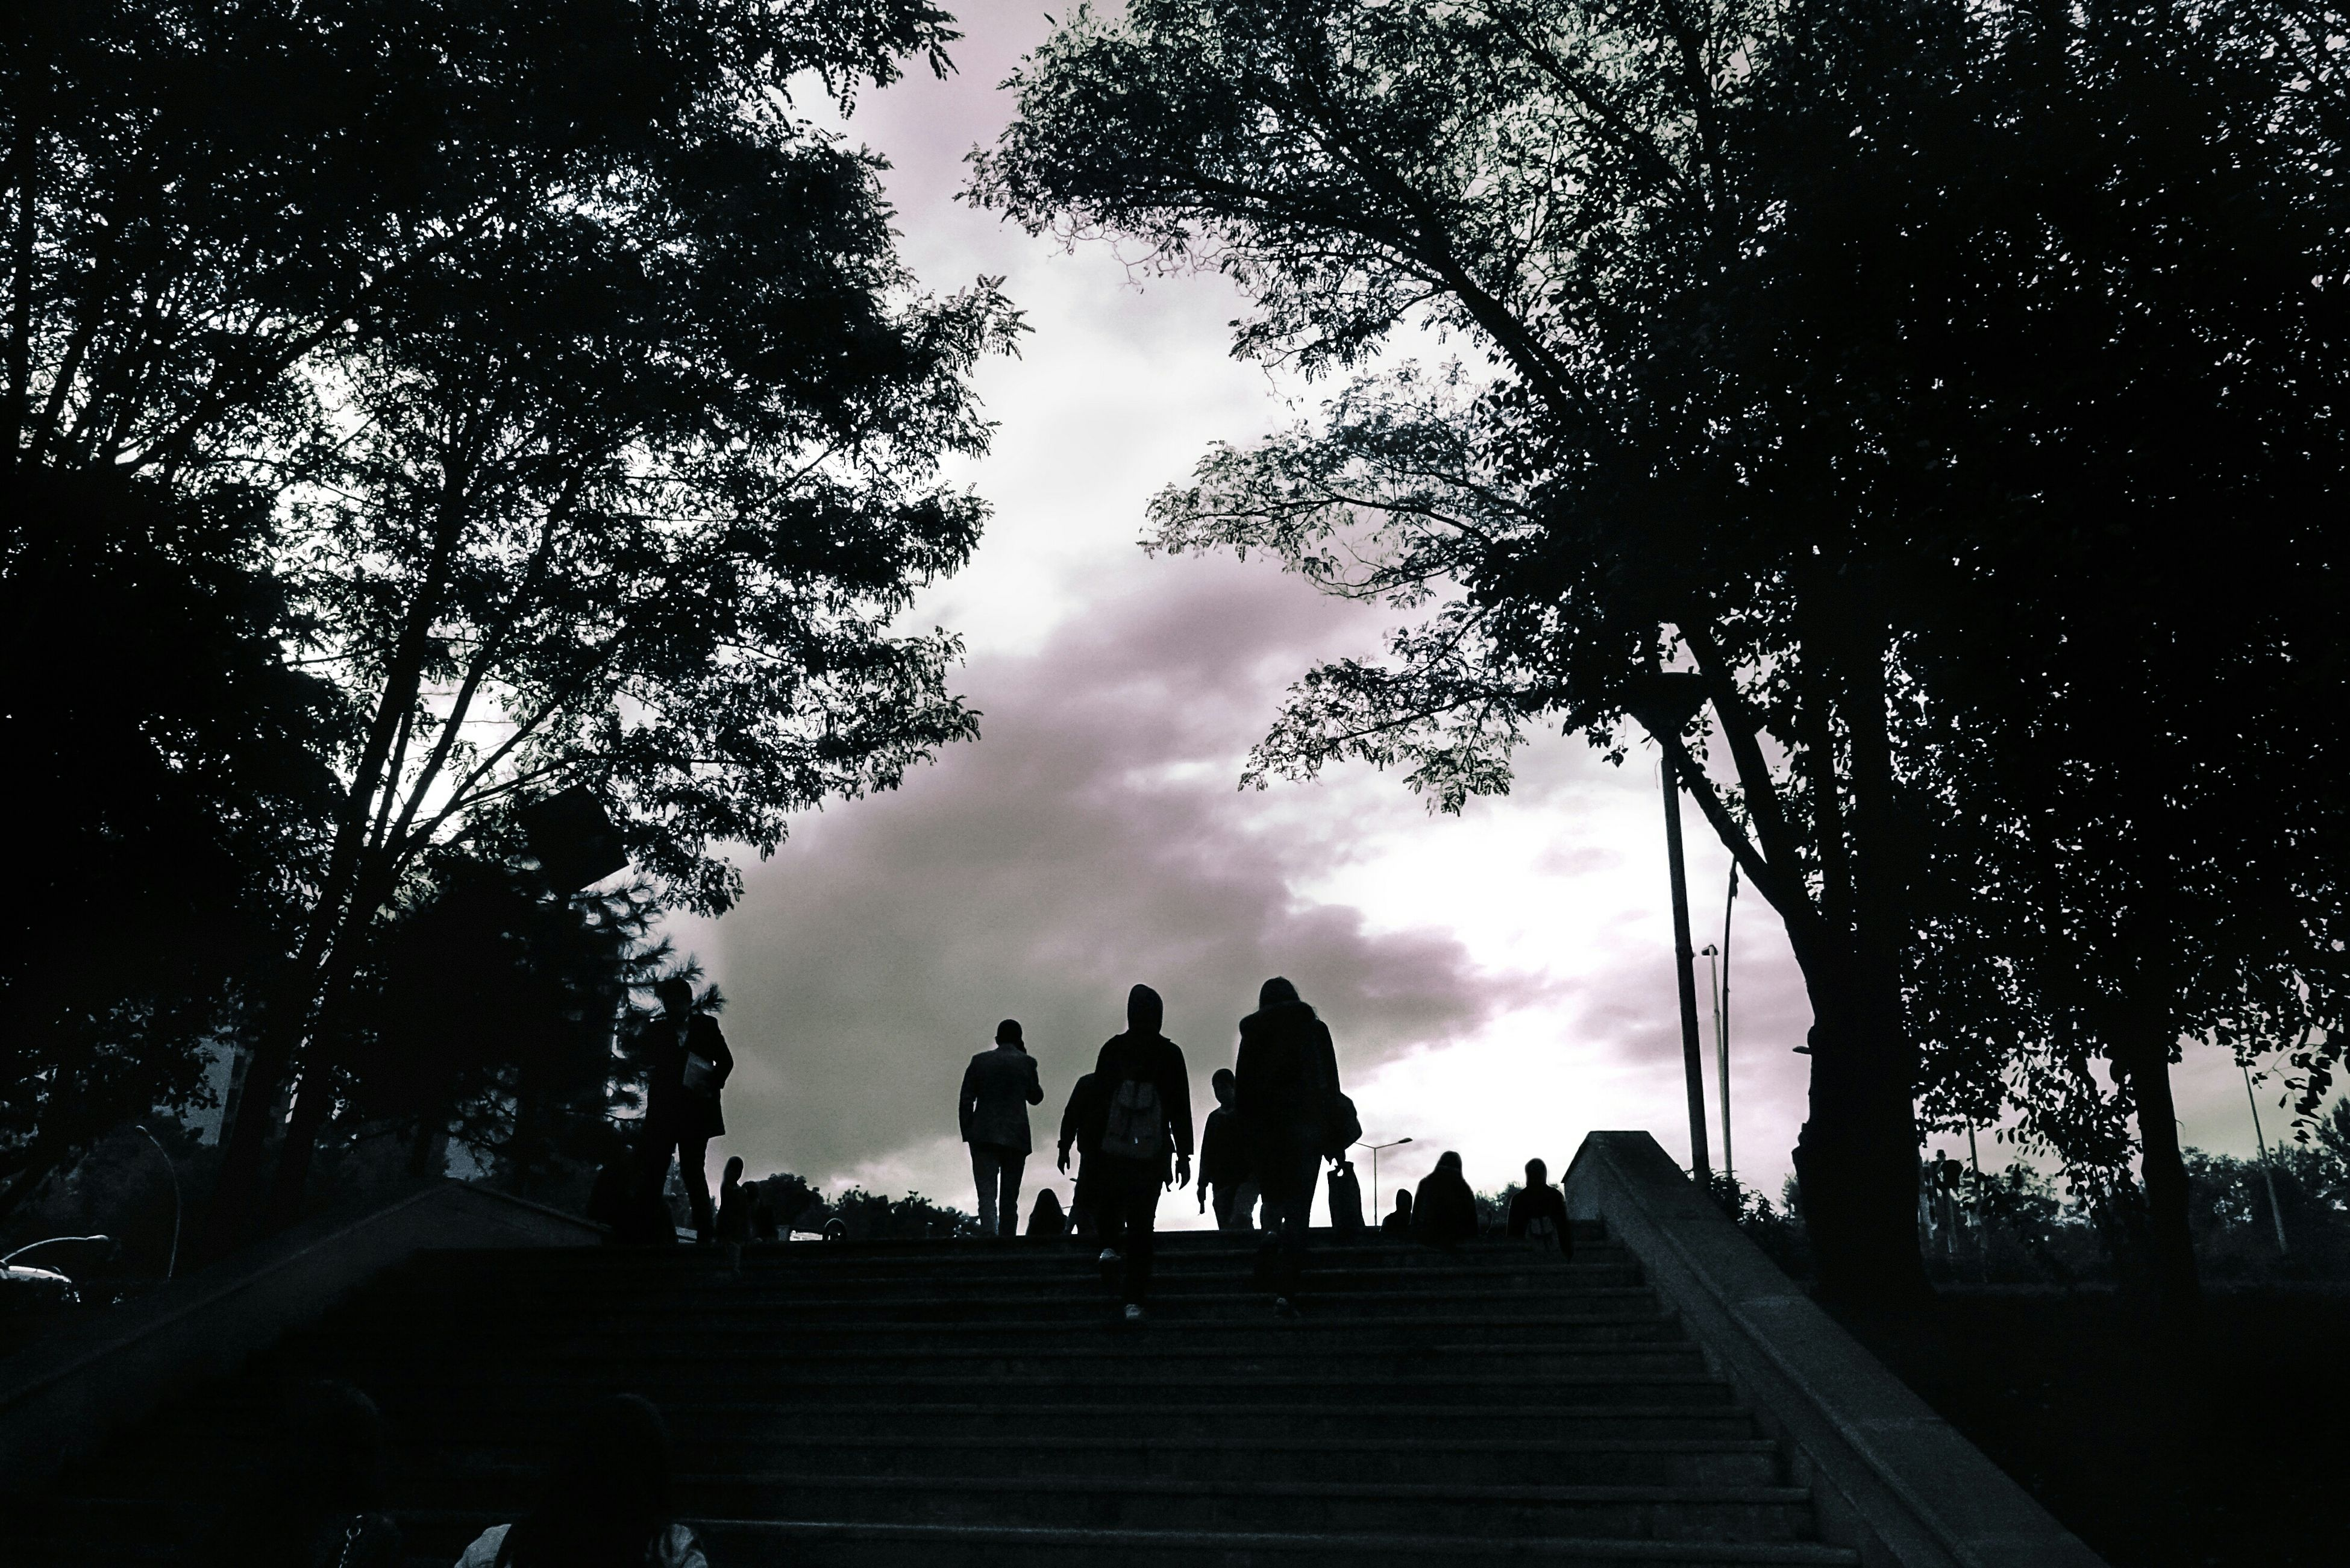 tree, silhouette, steps, men, person, sky, low angle view, togetherness, group of people, adult, day, outline, outdoors, tranquility, nature, tranquil scene, solitude